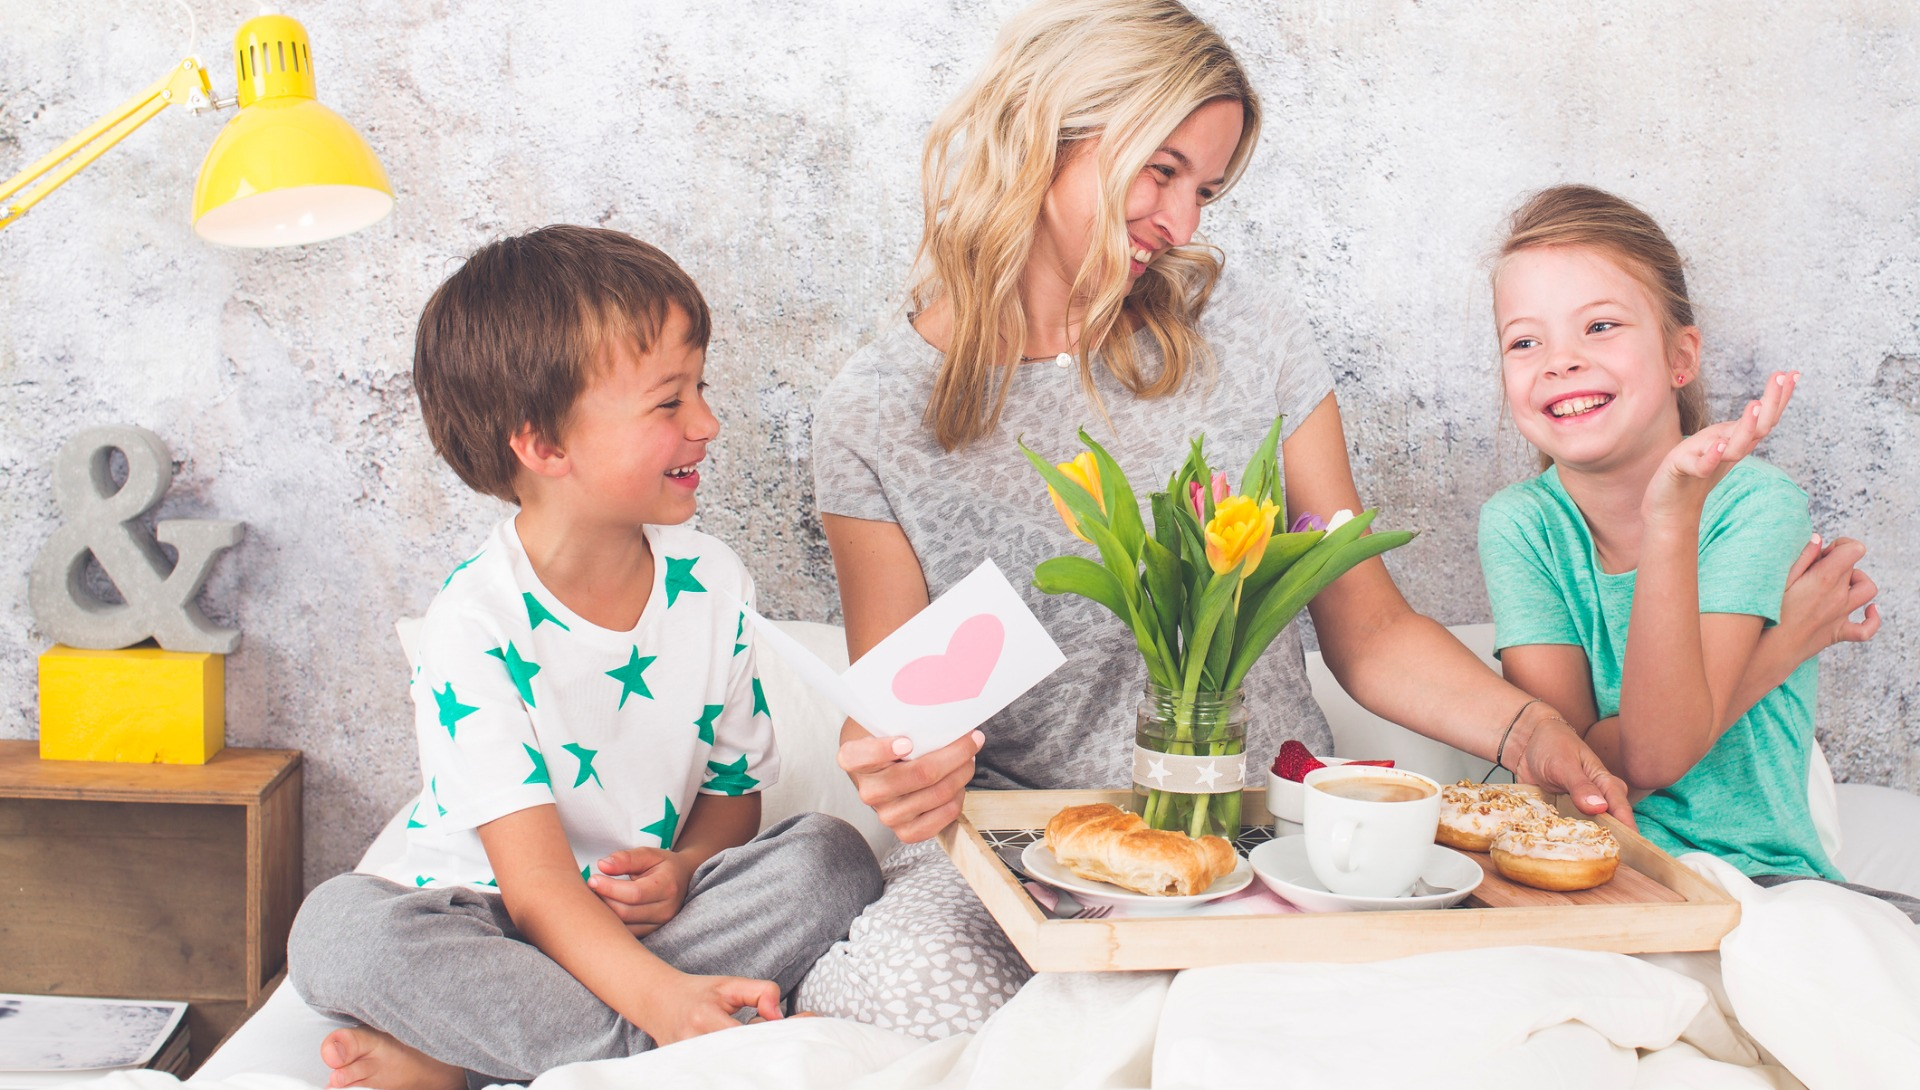 mothers-day-two-children-surprise-their-mother-with-breakfast-in-bed-picture-id946441468